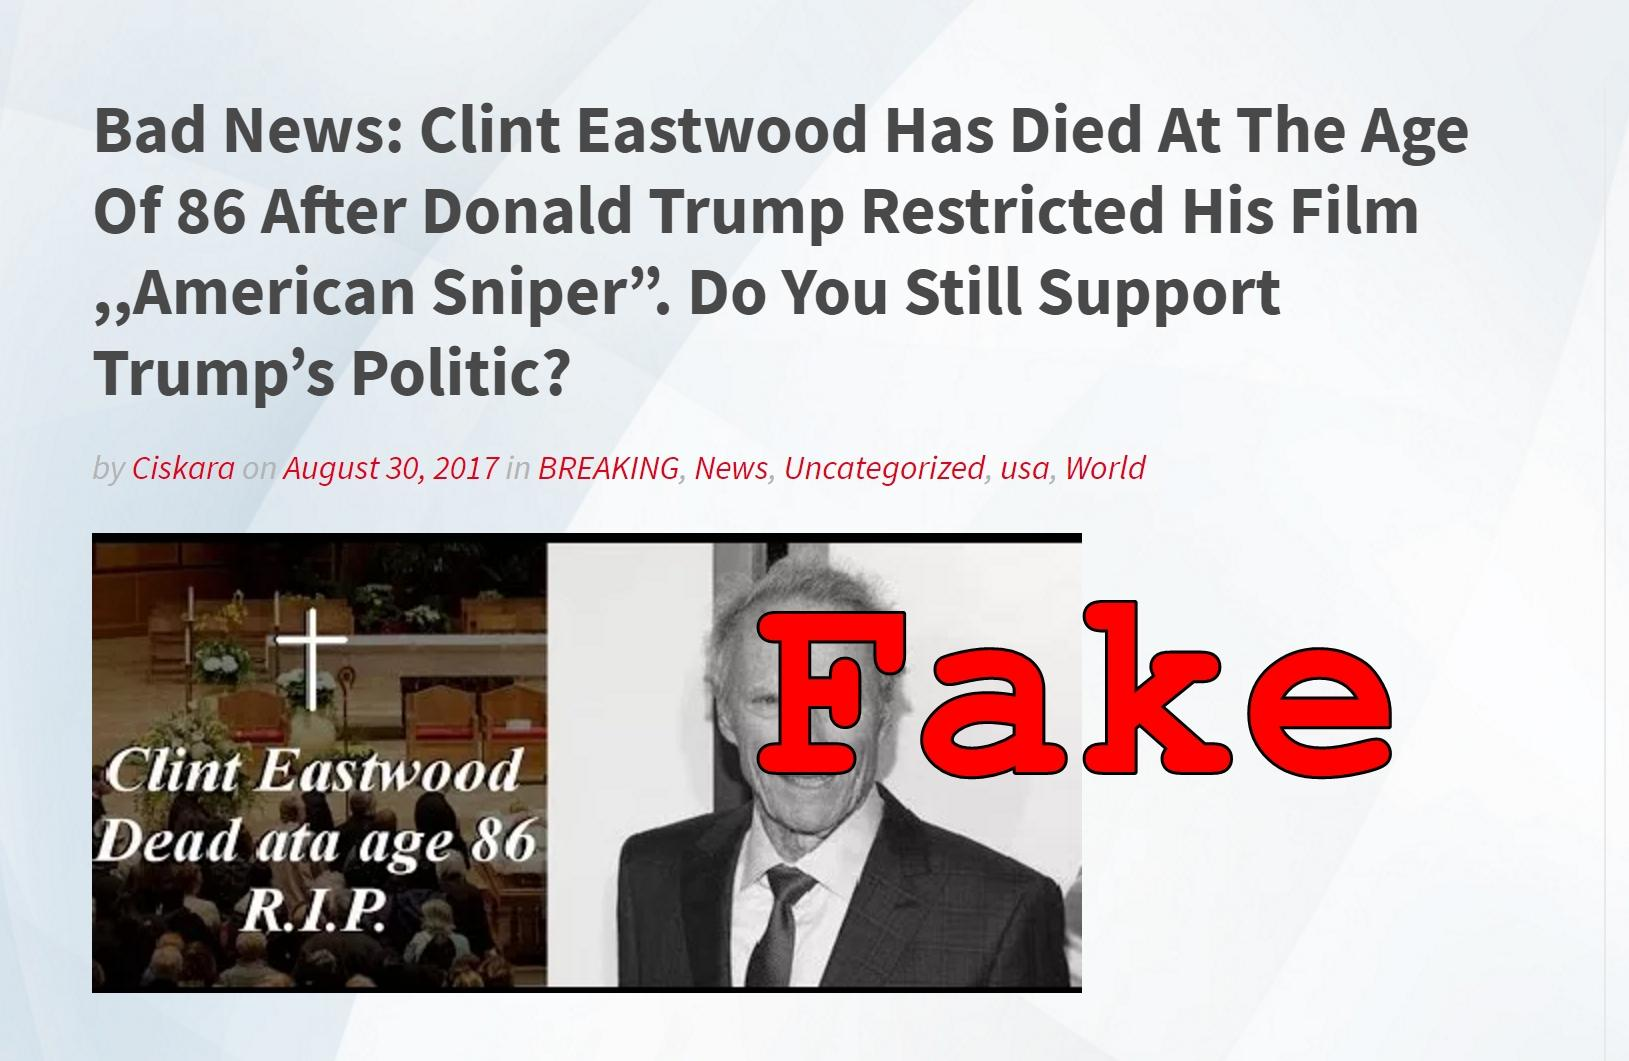 Fake News: Clint Eastwood Did NOT Die At The Age Of 86 After Donald Trump Restricted His Film American Sniper